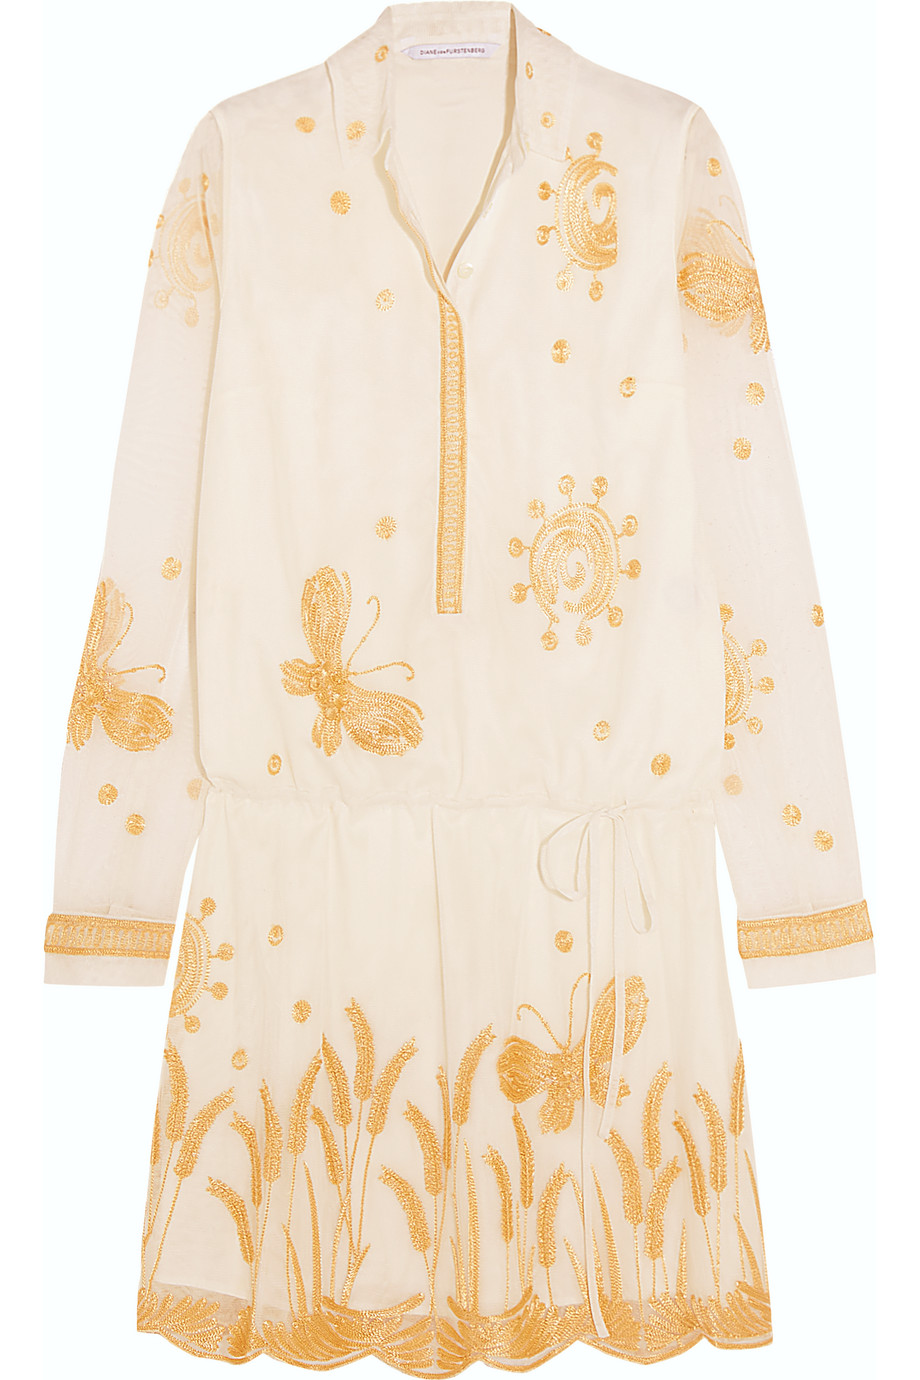 Diane Von Furstenberg Delphina Embroidered Tulle Mini Dress, White/Gold, Women's - Embroidered, Size: 6